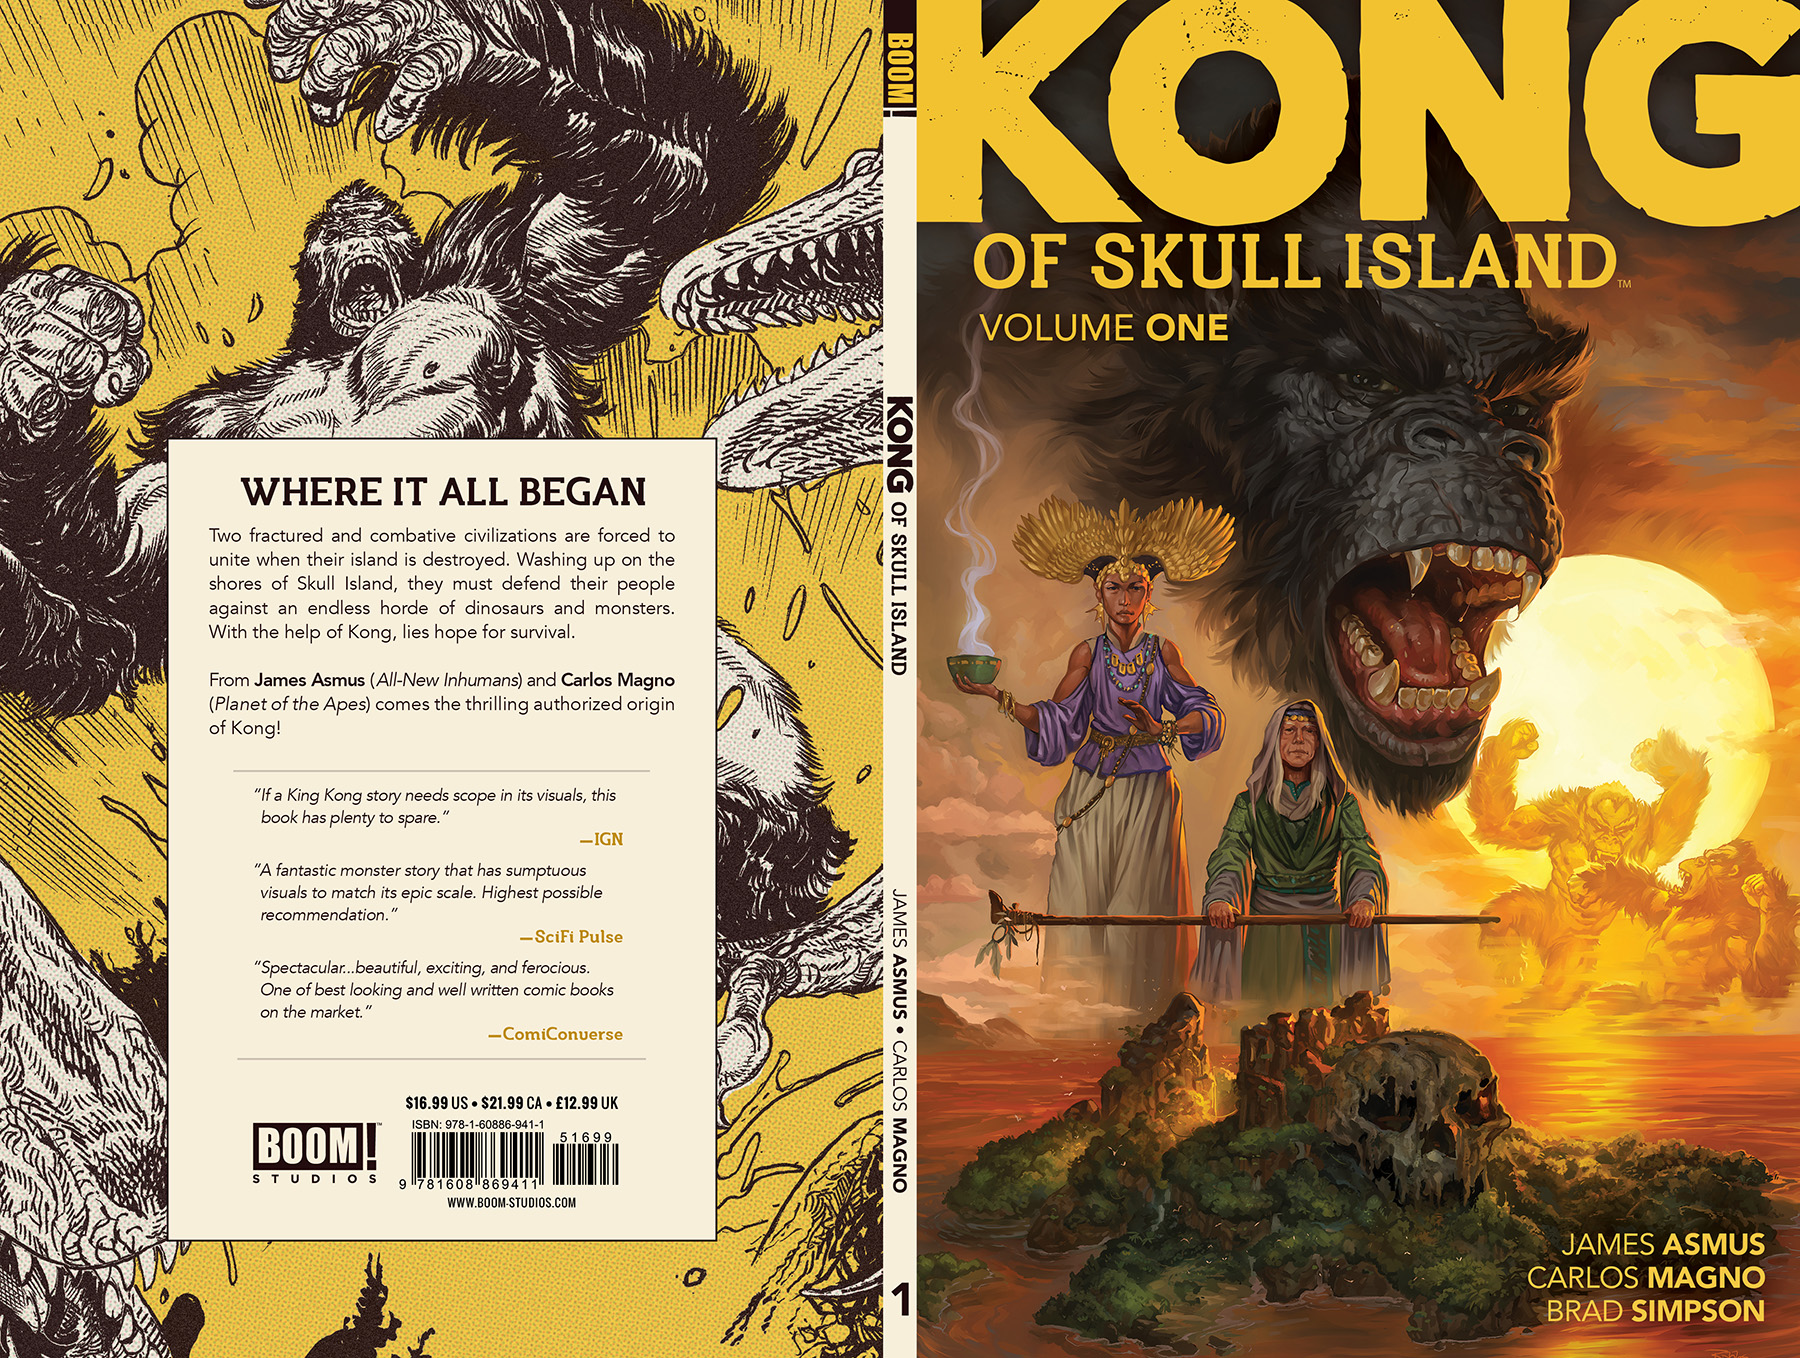 Cover design for  Kong of Skull Island  Vol. 1